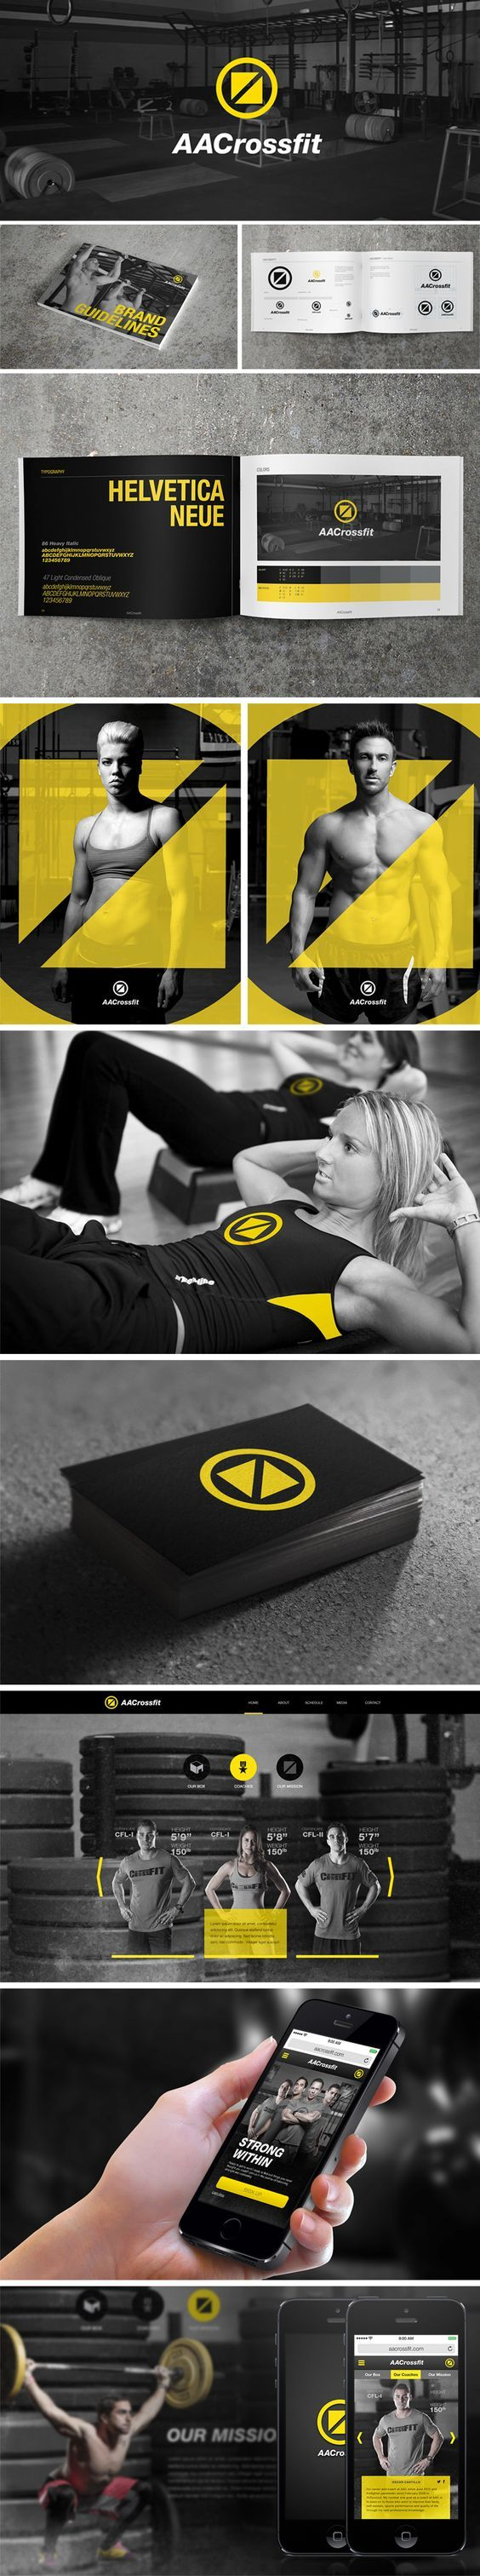 14 best Gym logos images on Pinterest | Fitness logo, Gym logo and ... for Physical Fitness Design  75tgx